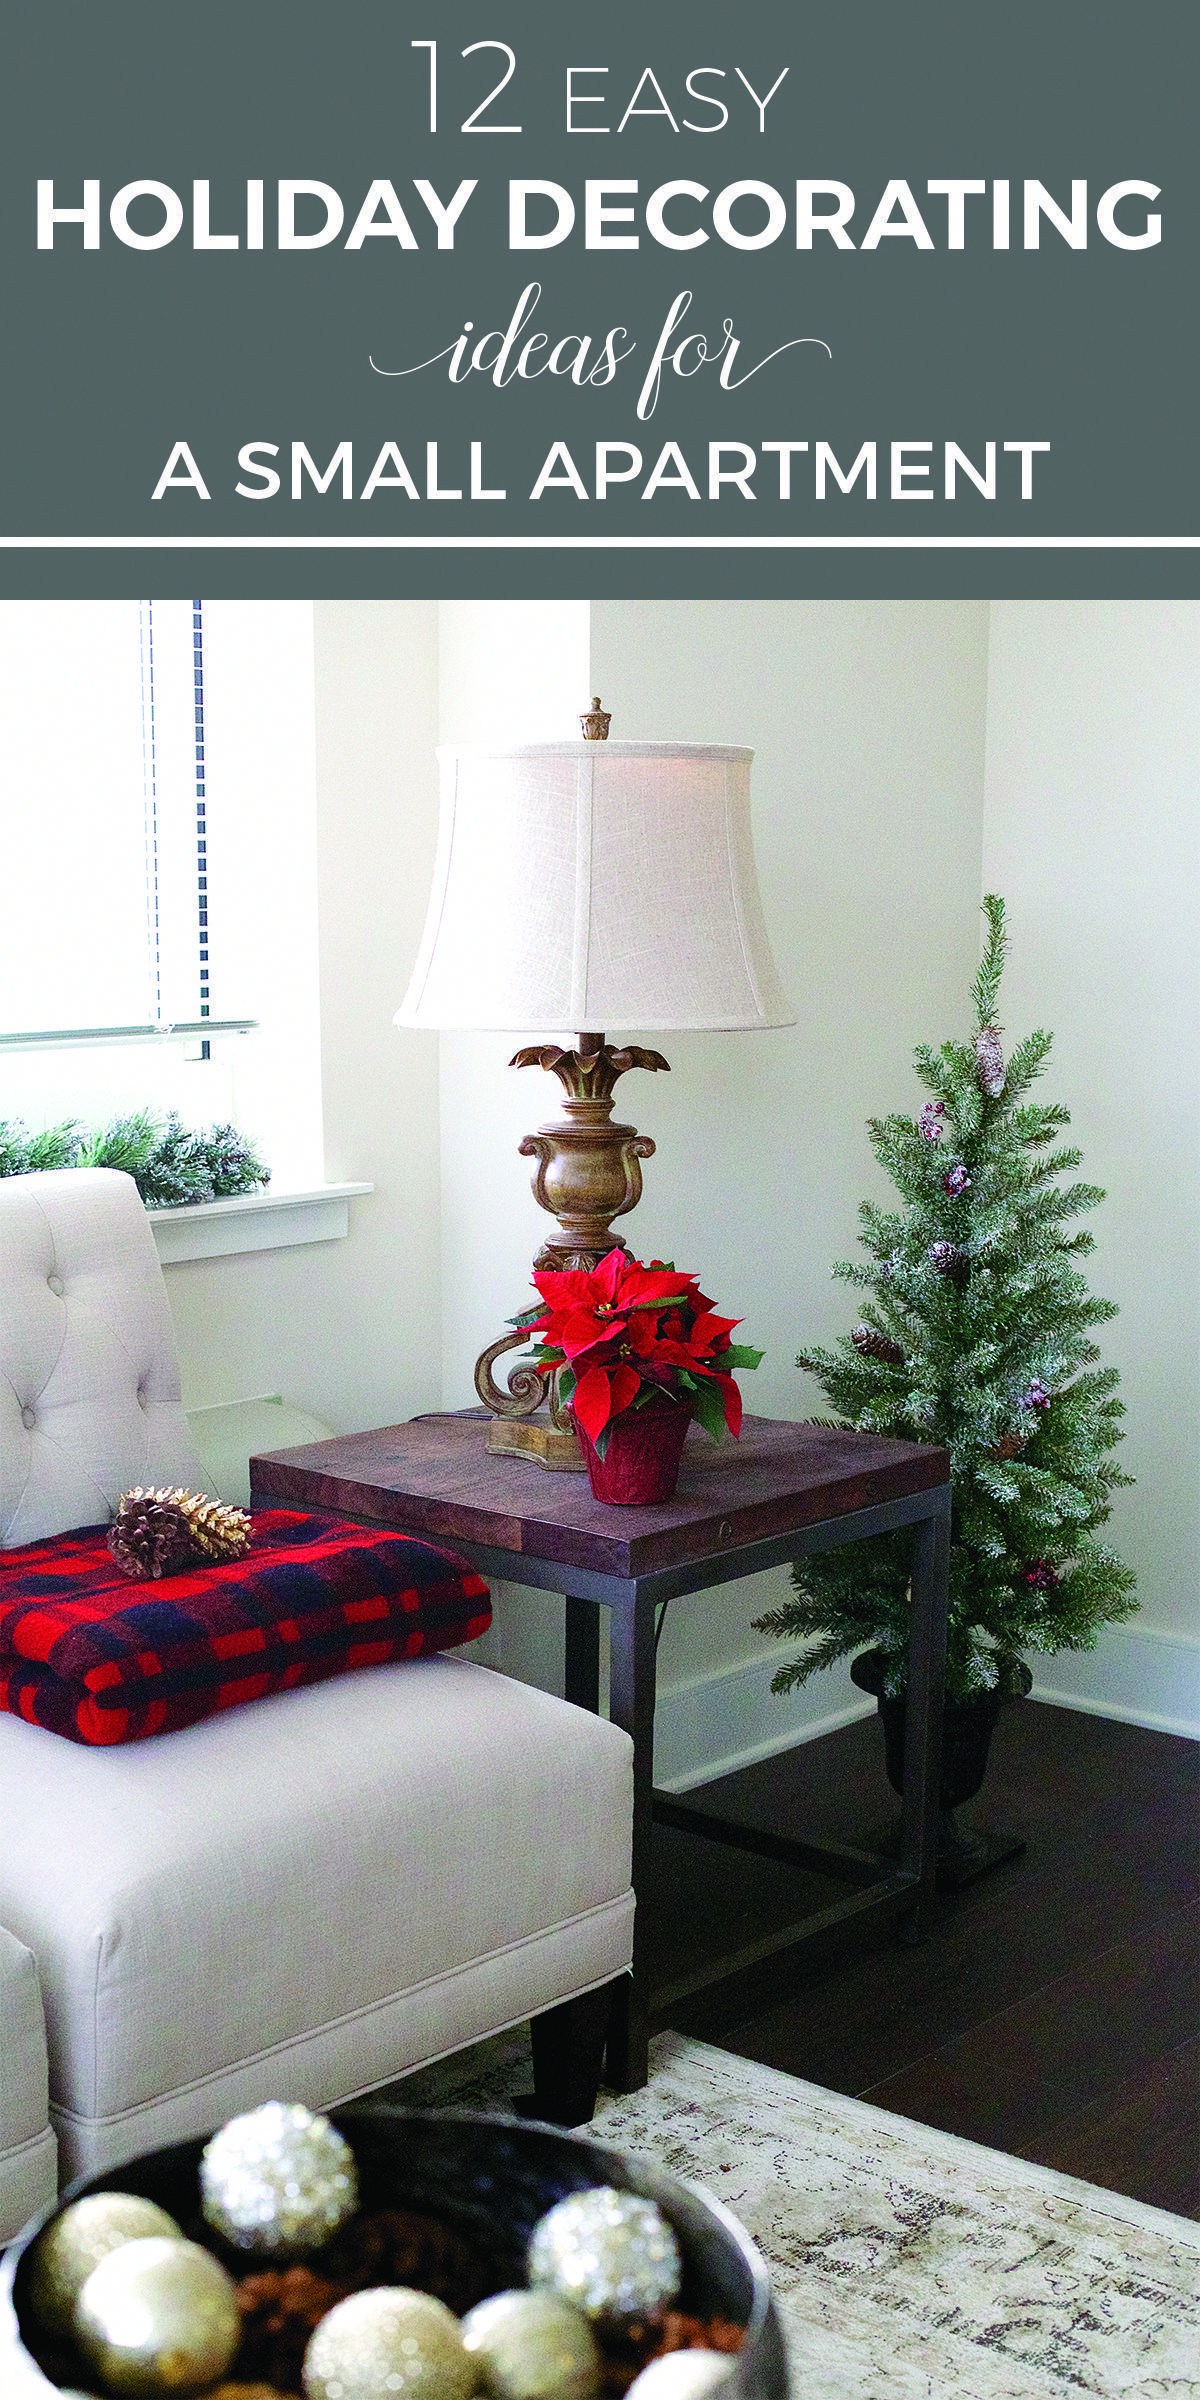 12 Easy Holiday Decorating Ideas For A